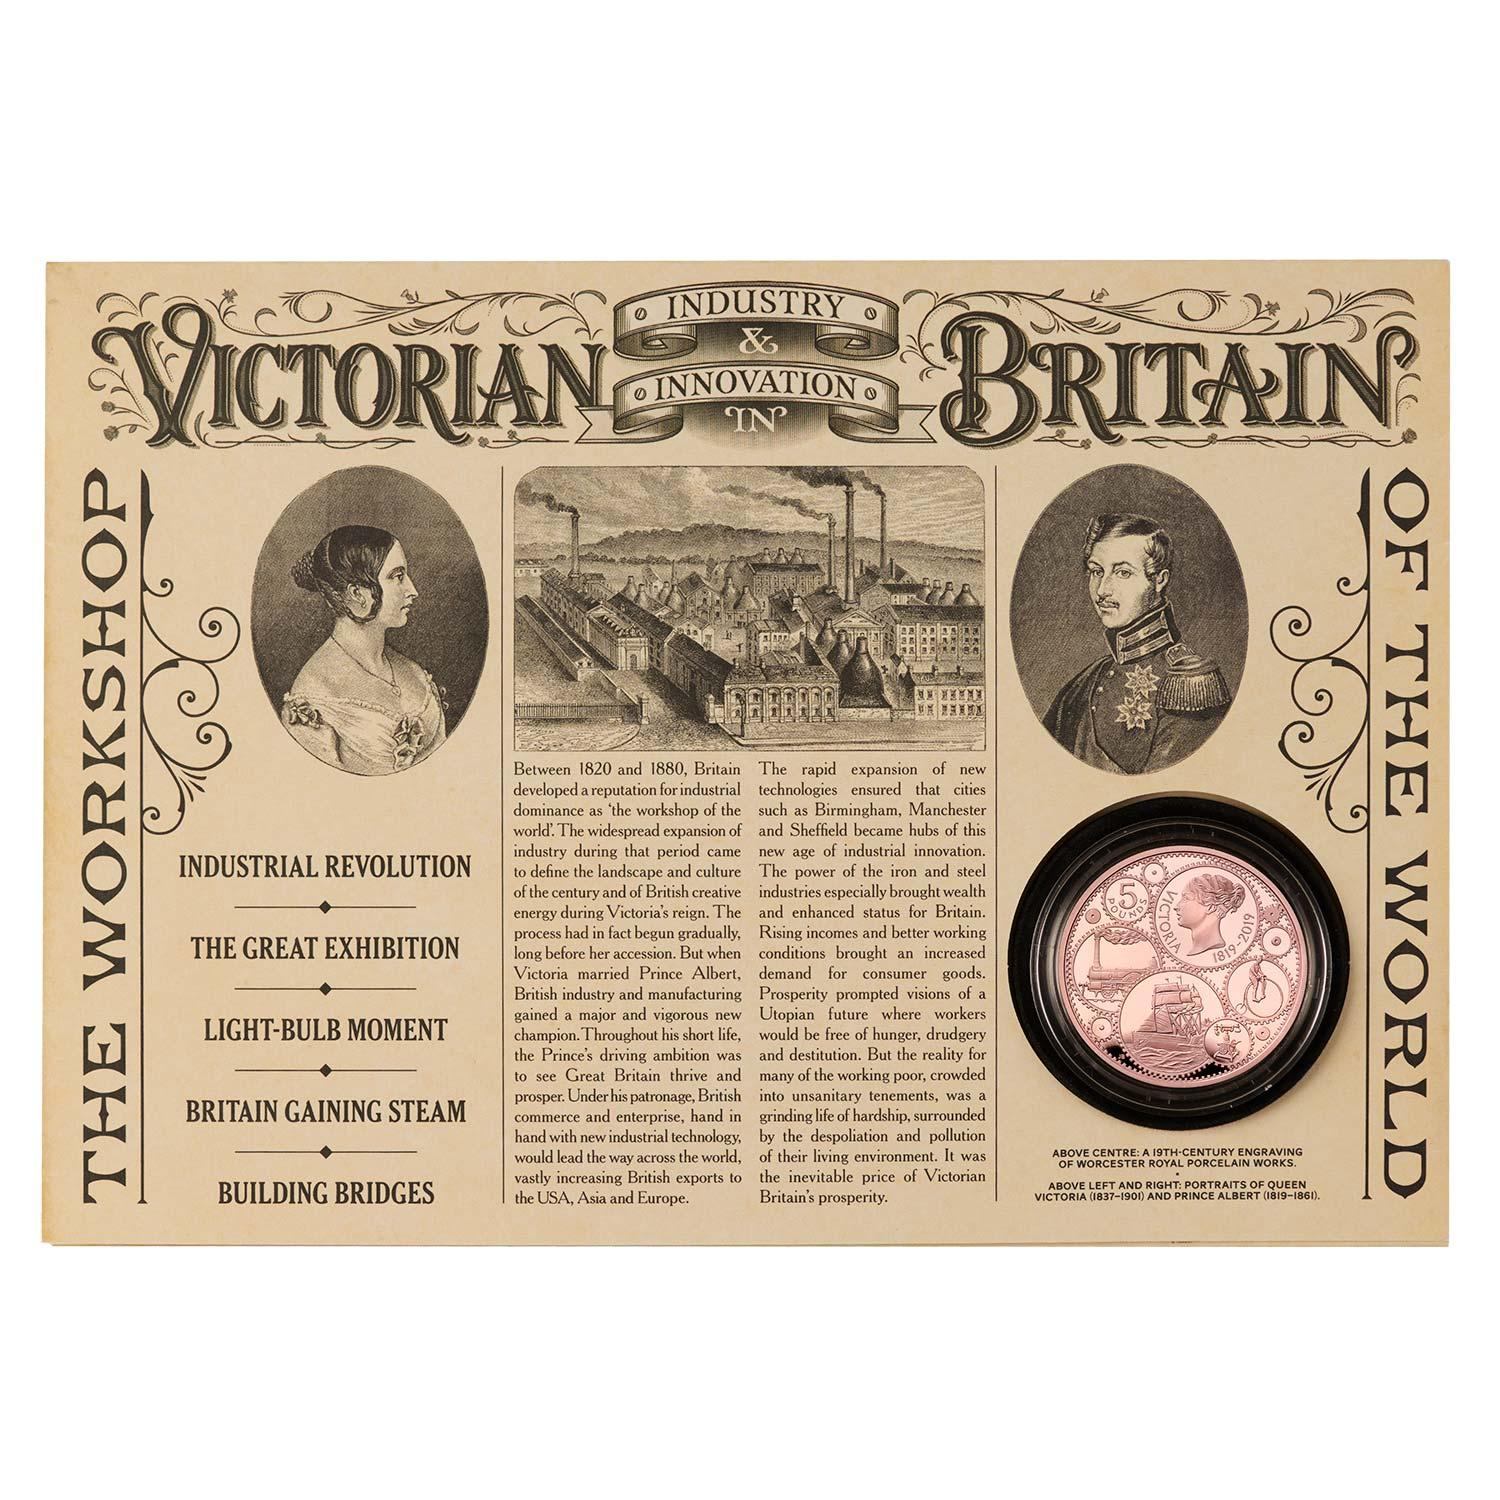 Discover The Royal Mint's new commemorative Queen Victoria